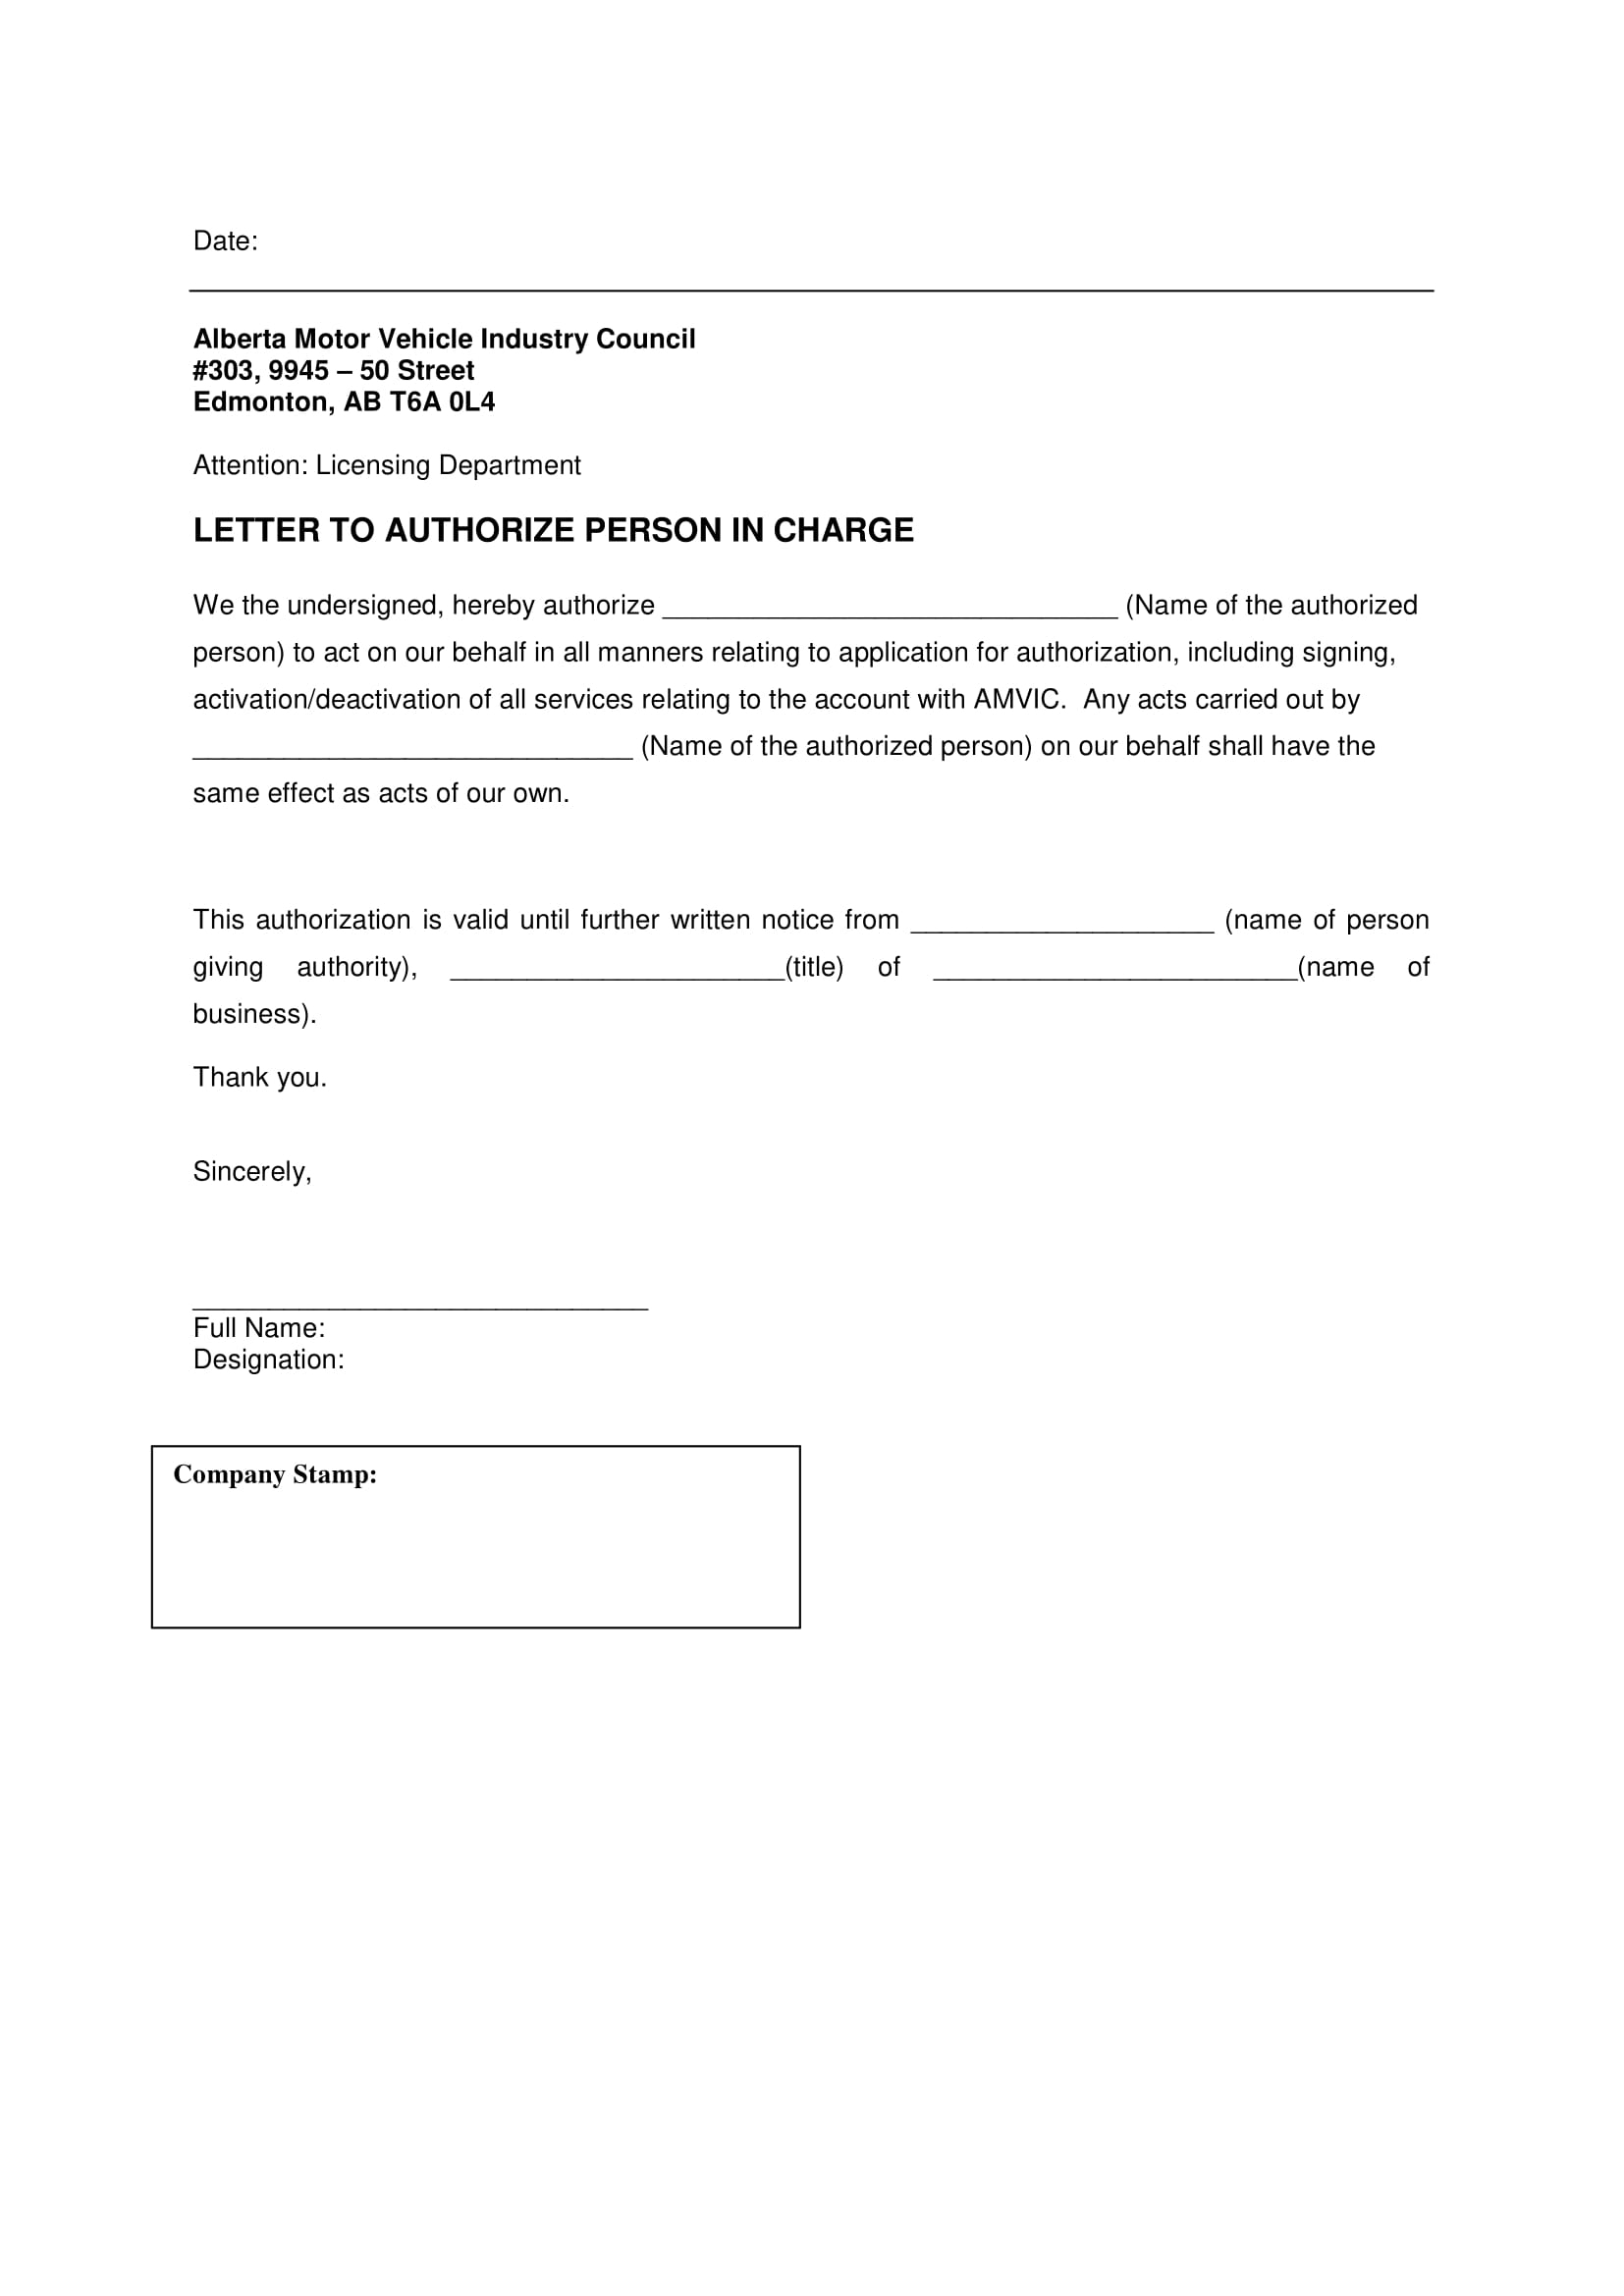 letter to authorizate person in charge to act on behalf example 1